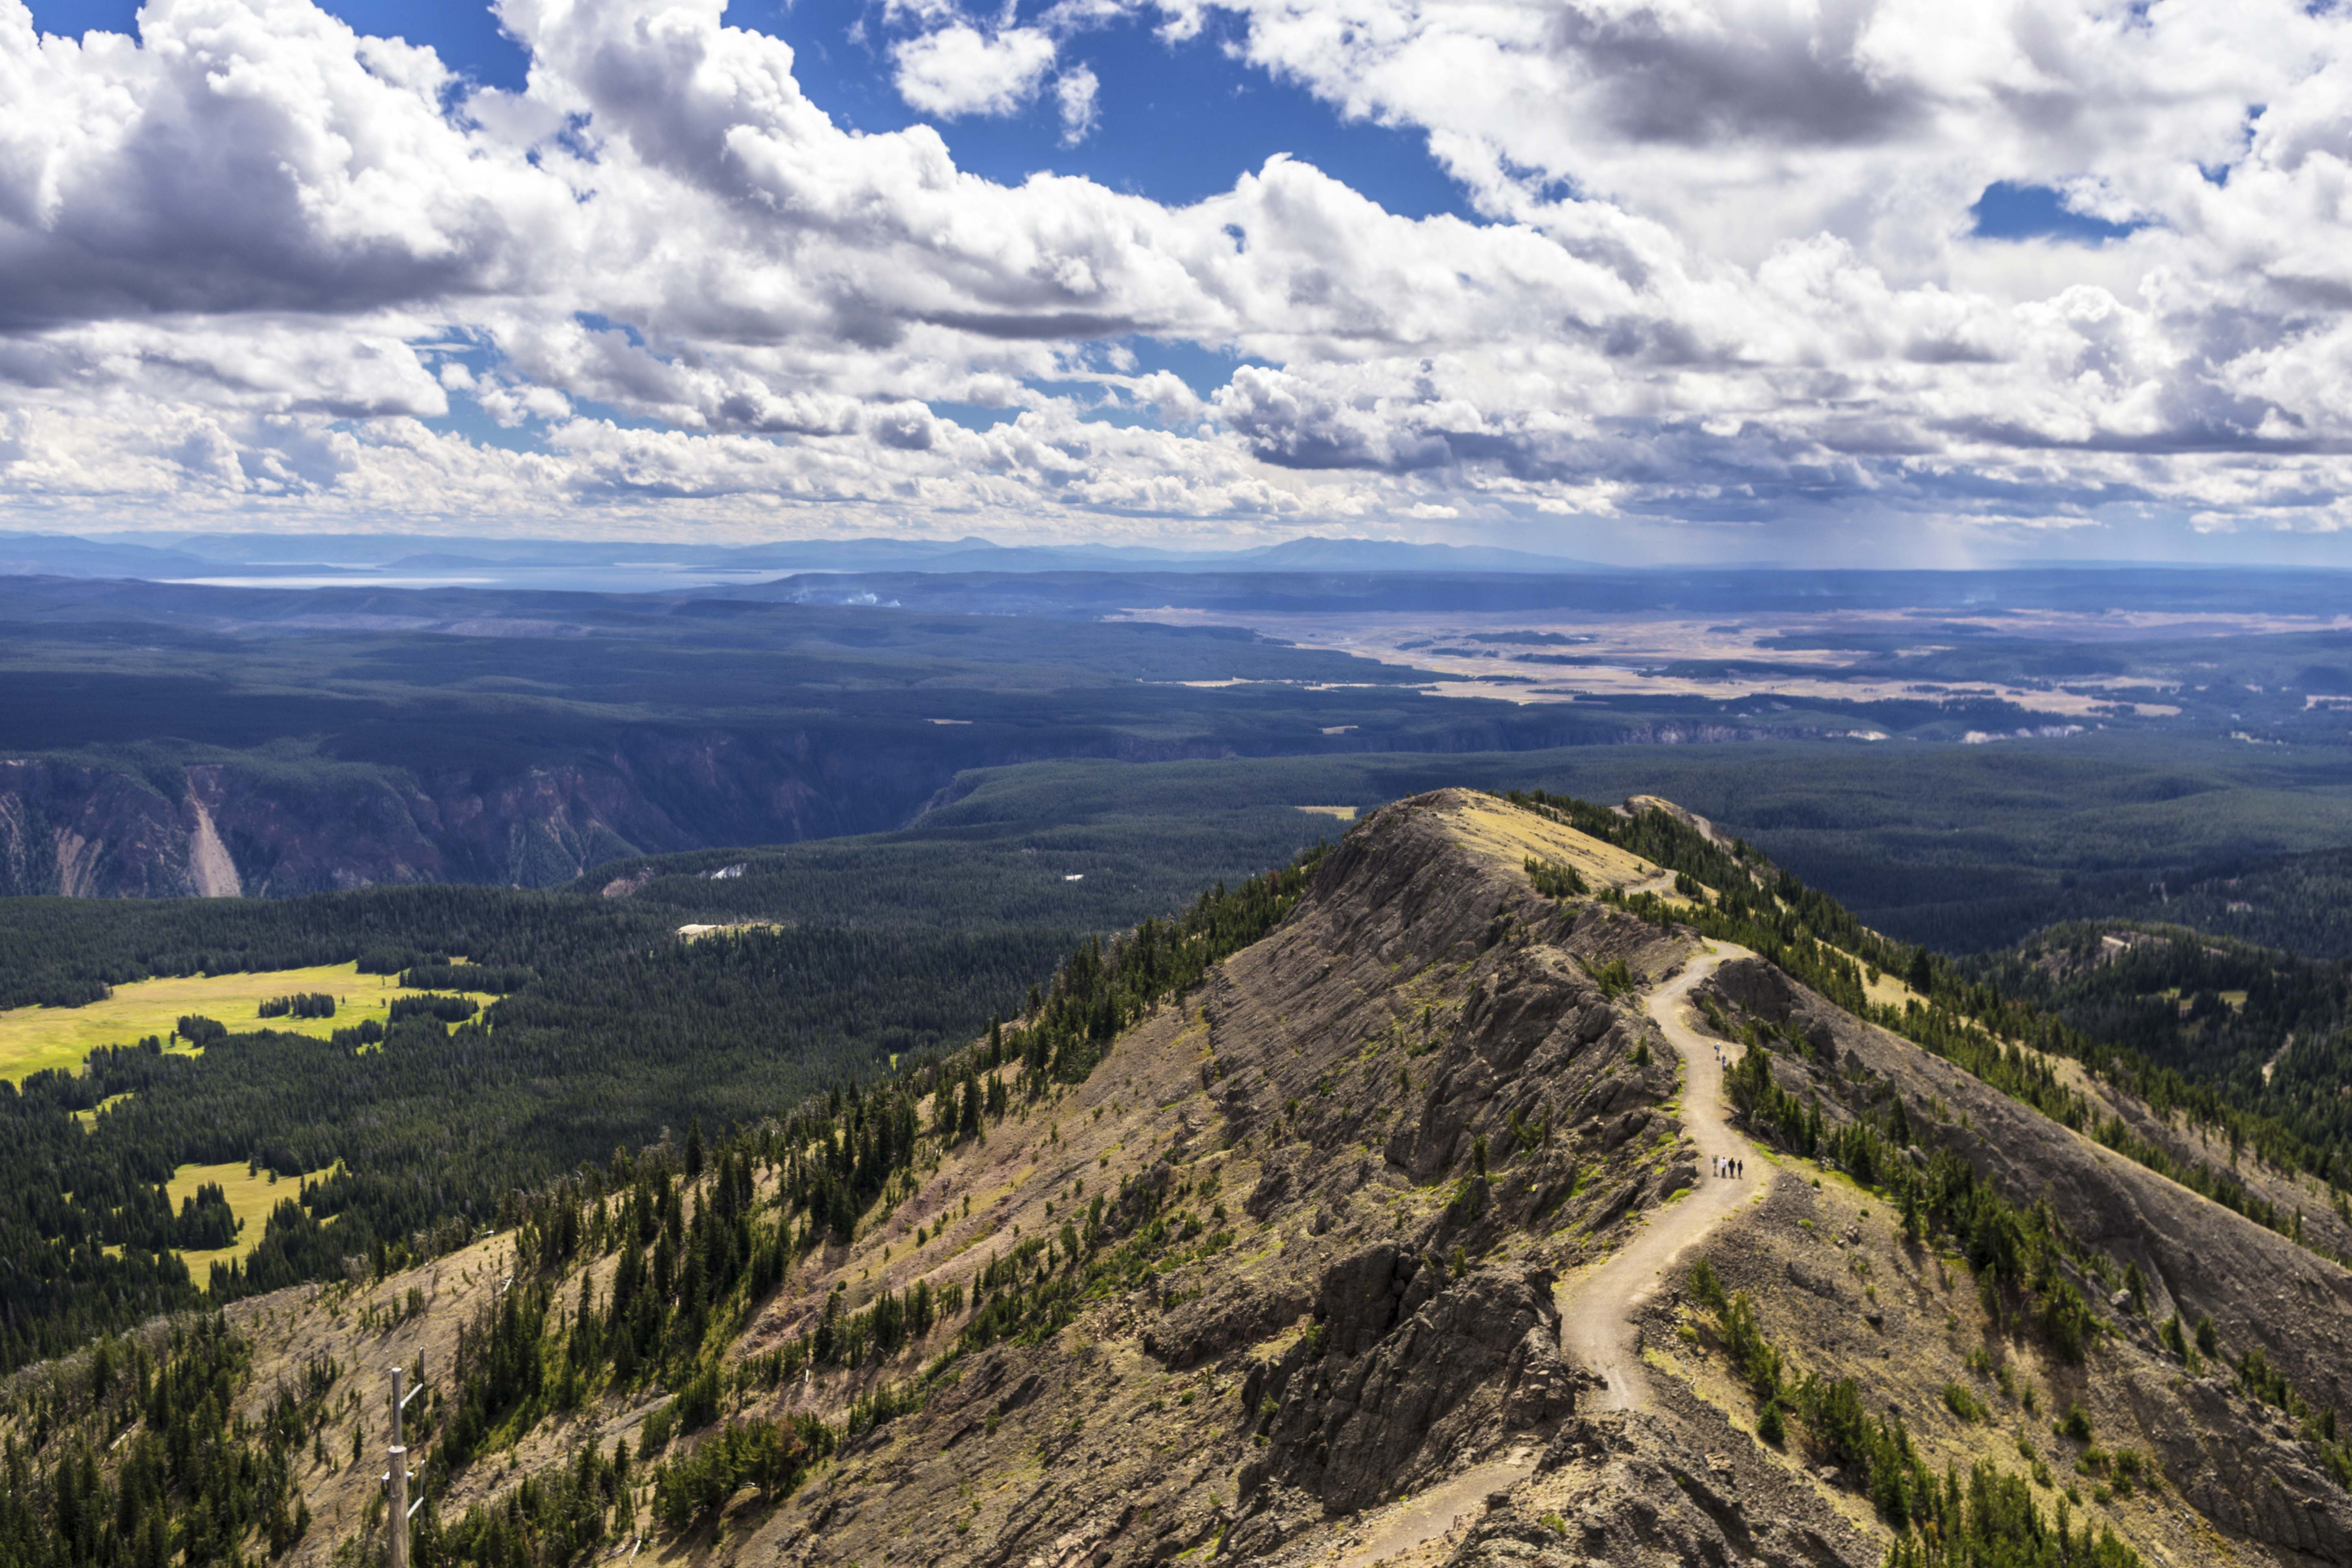 view from the top of mount washburn summit in yellowstone